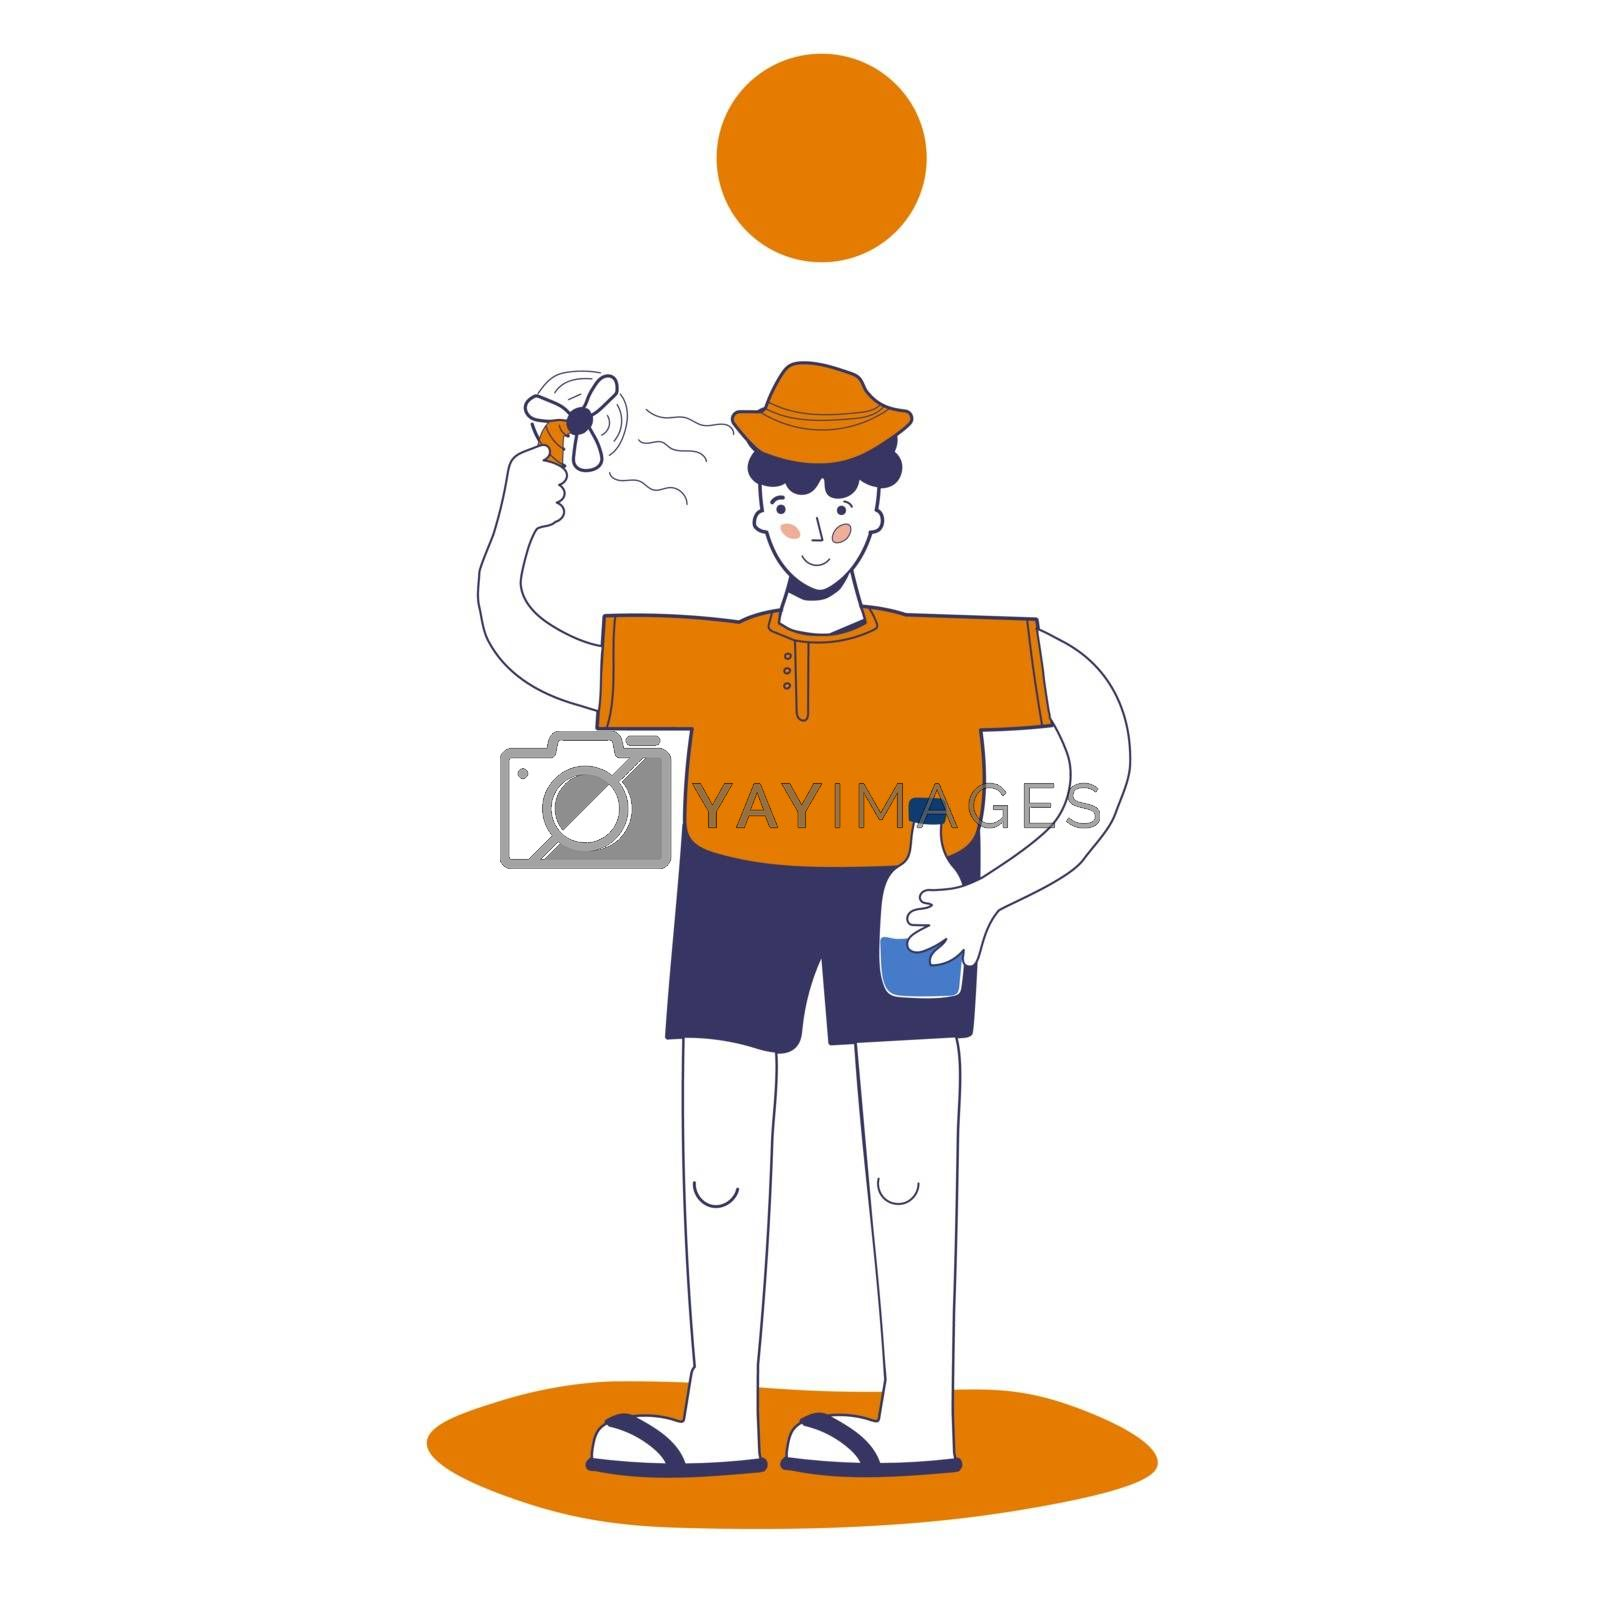 man uses a mini fan and holds water in his hand, protection from heat and heat shock. Vector illustration with blue outline in cartoon hand-drawn style